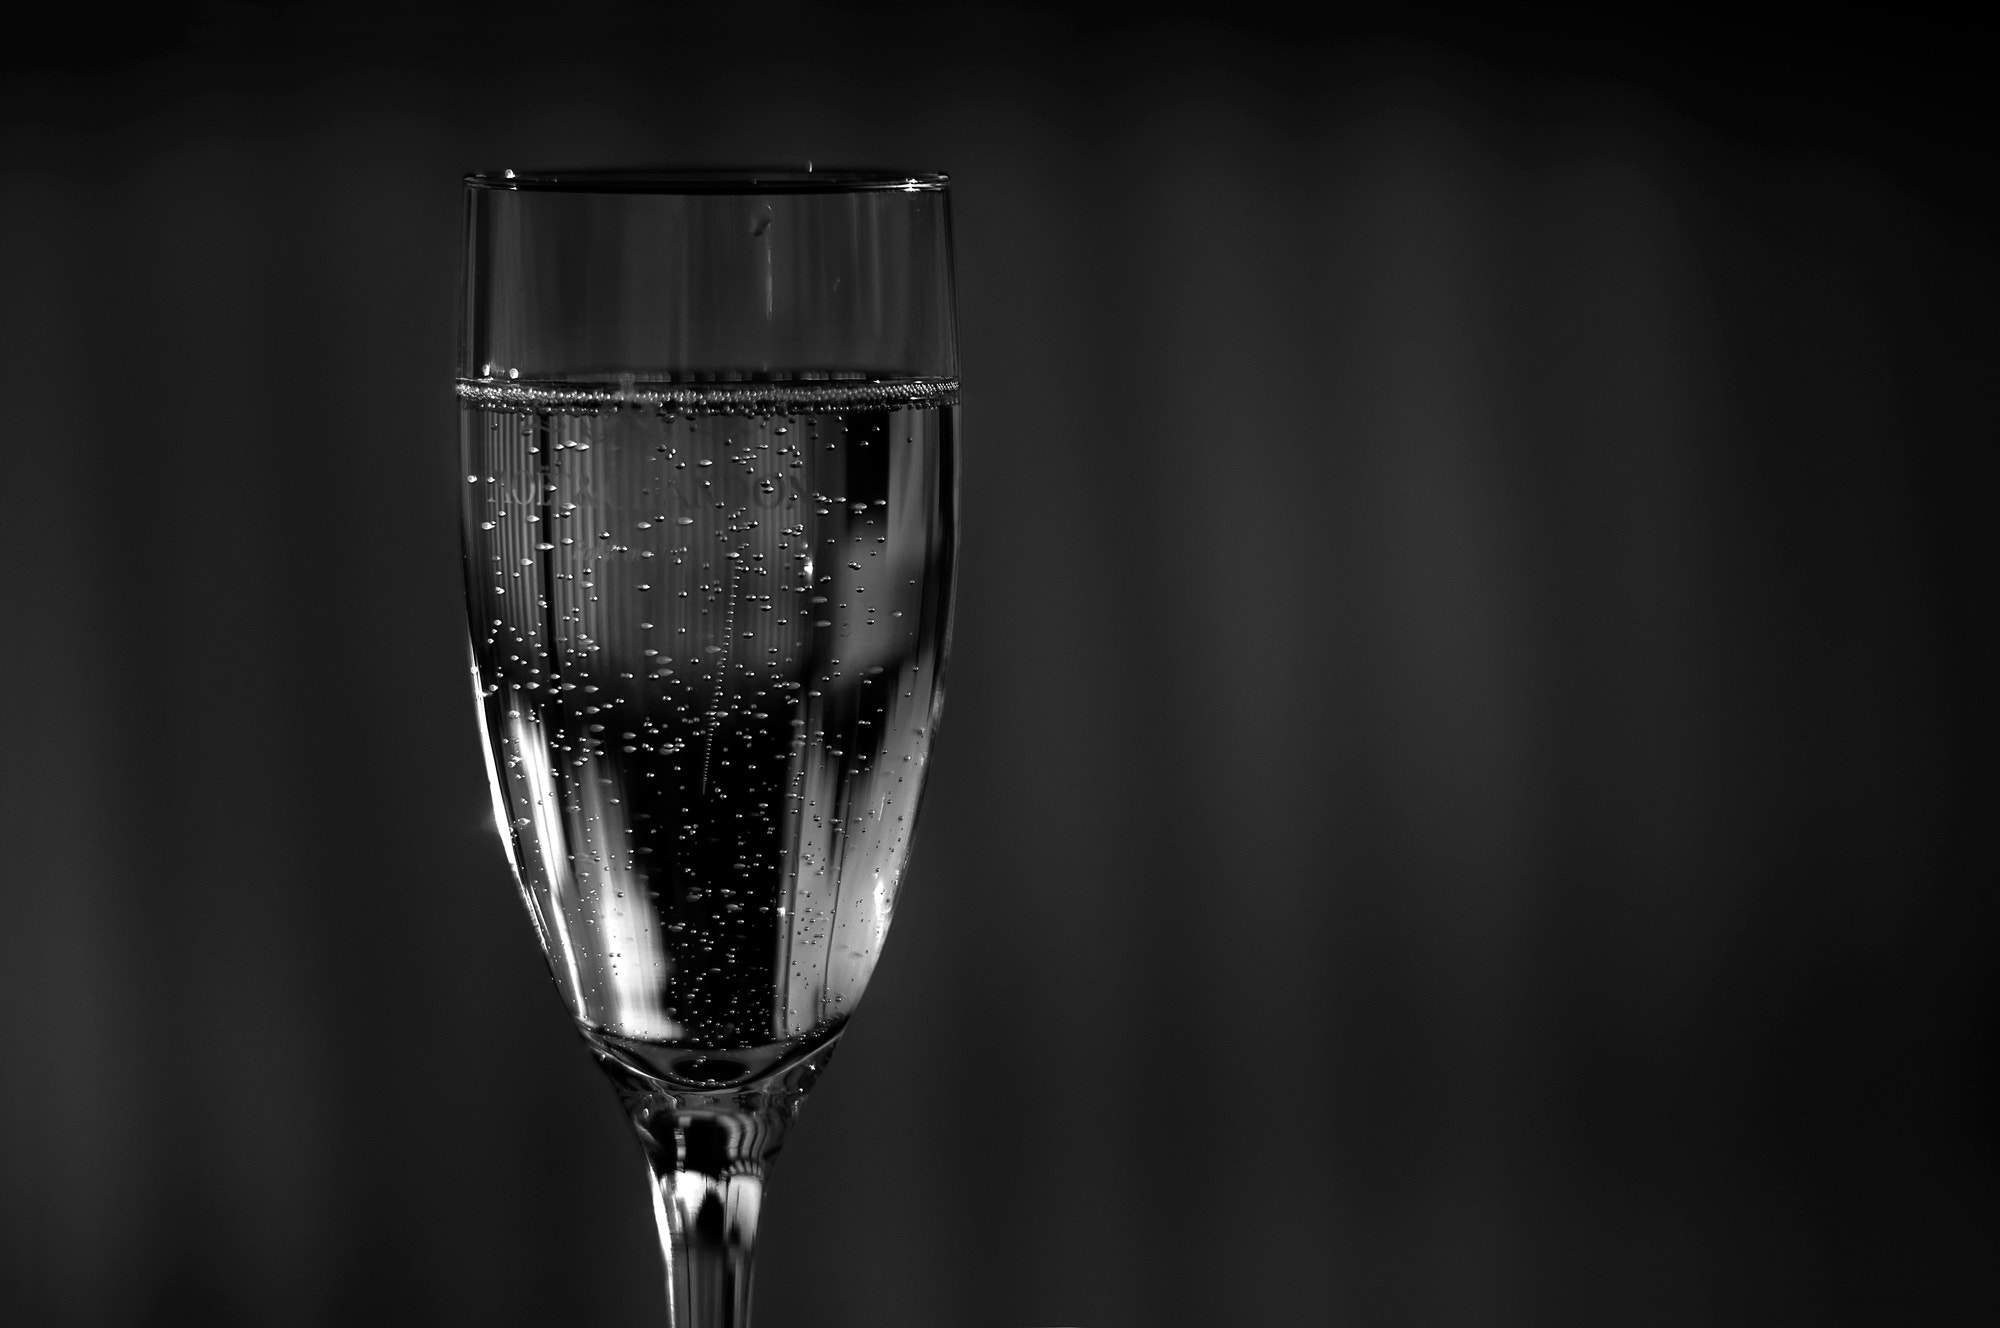 Photograph Tasty Bubbles by Carla Stringari Pudler on 500px